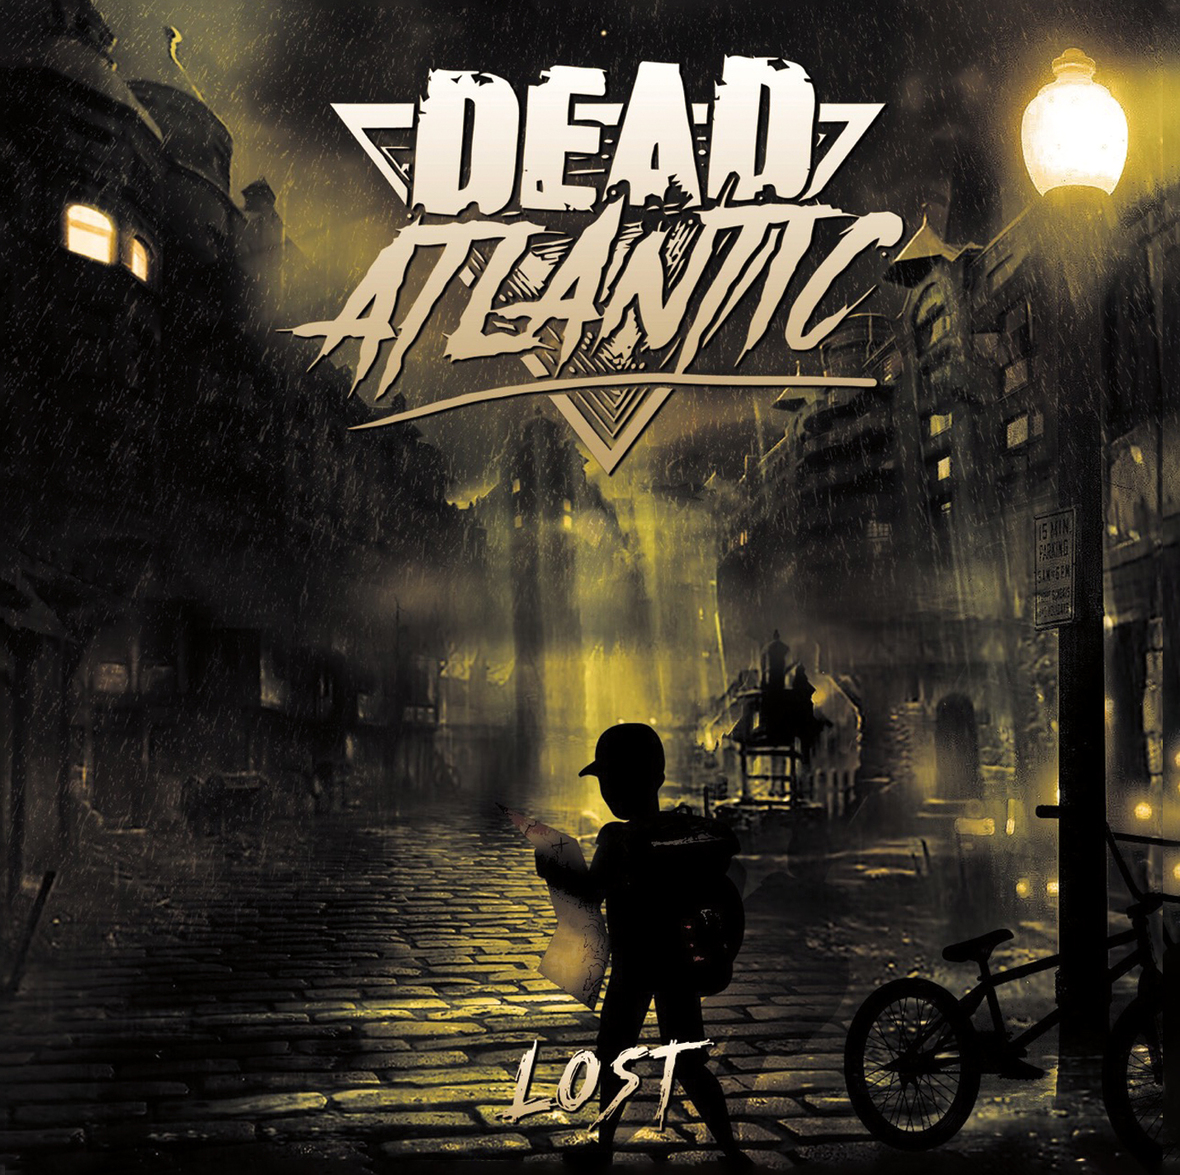 DEAD ATLANTIC LOST FRONT COVER TEMPLATE